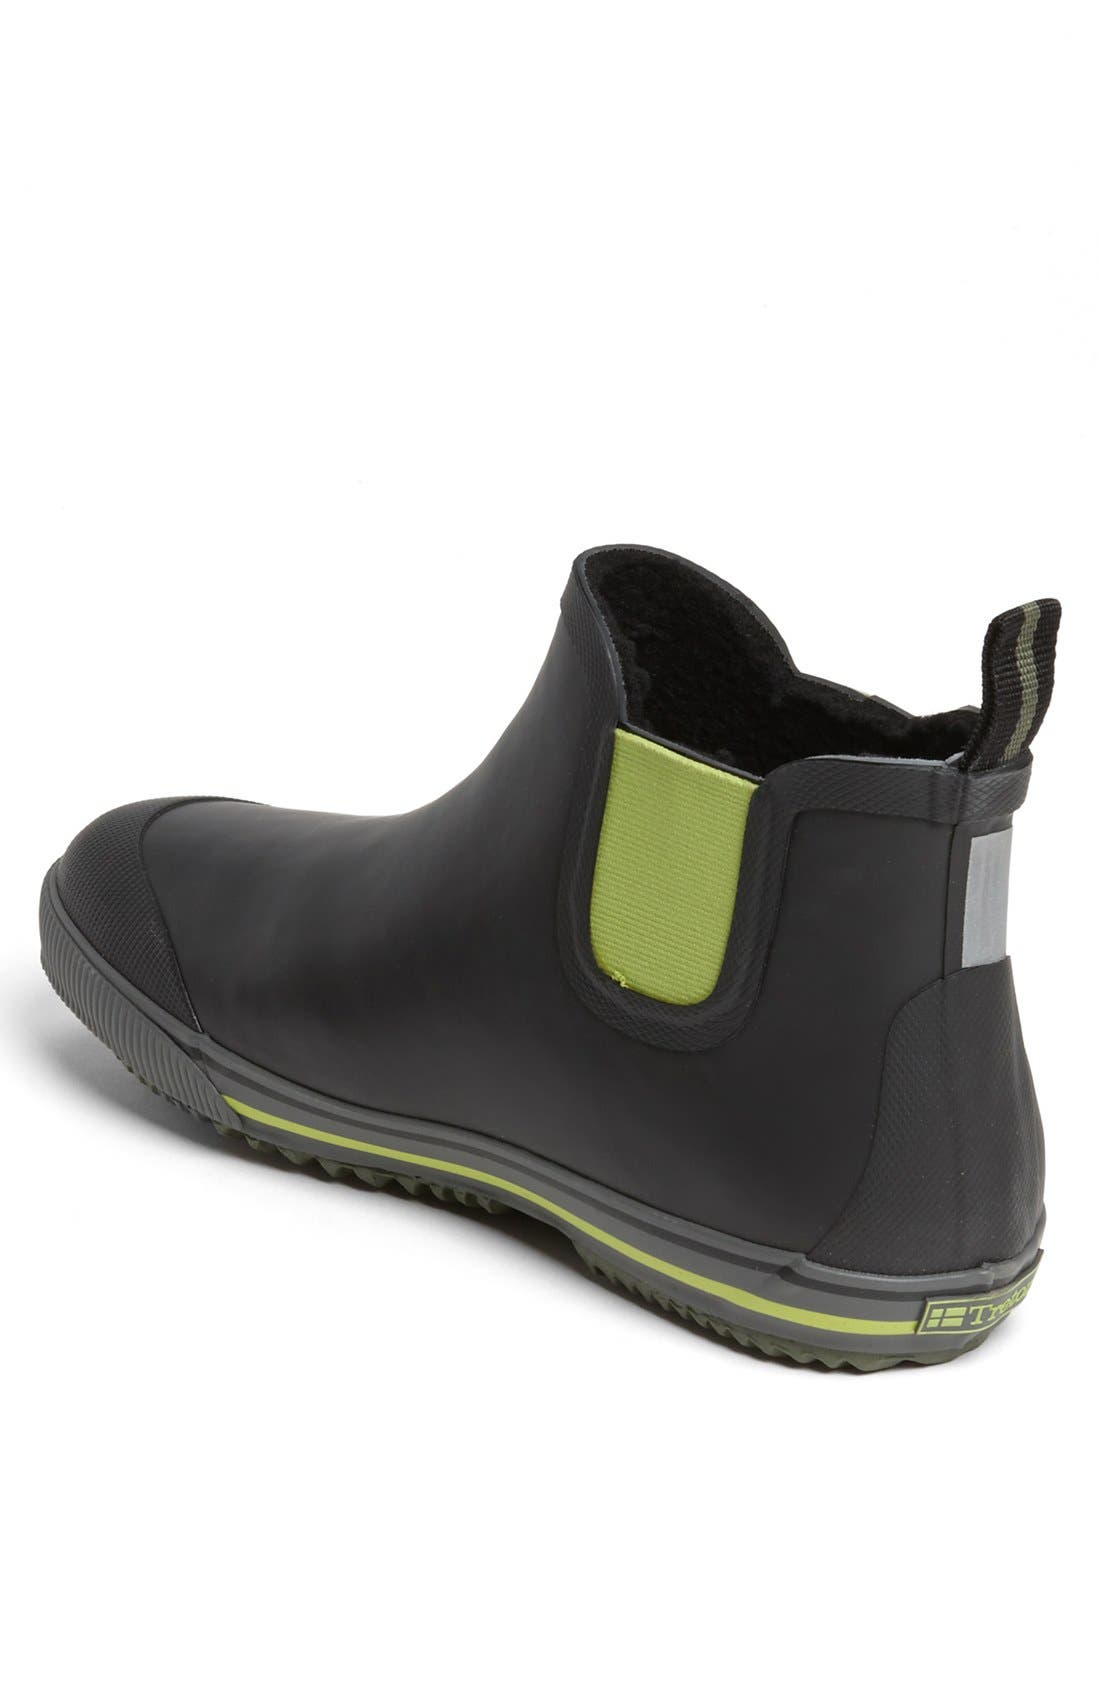 Alternate Image 2  - Tretorn 'Stråla Vinter' Rain Boot (Online Only)